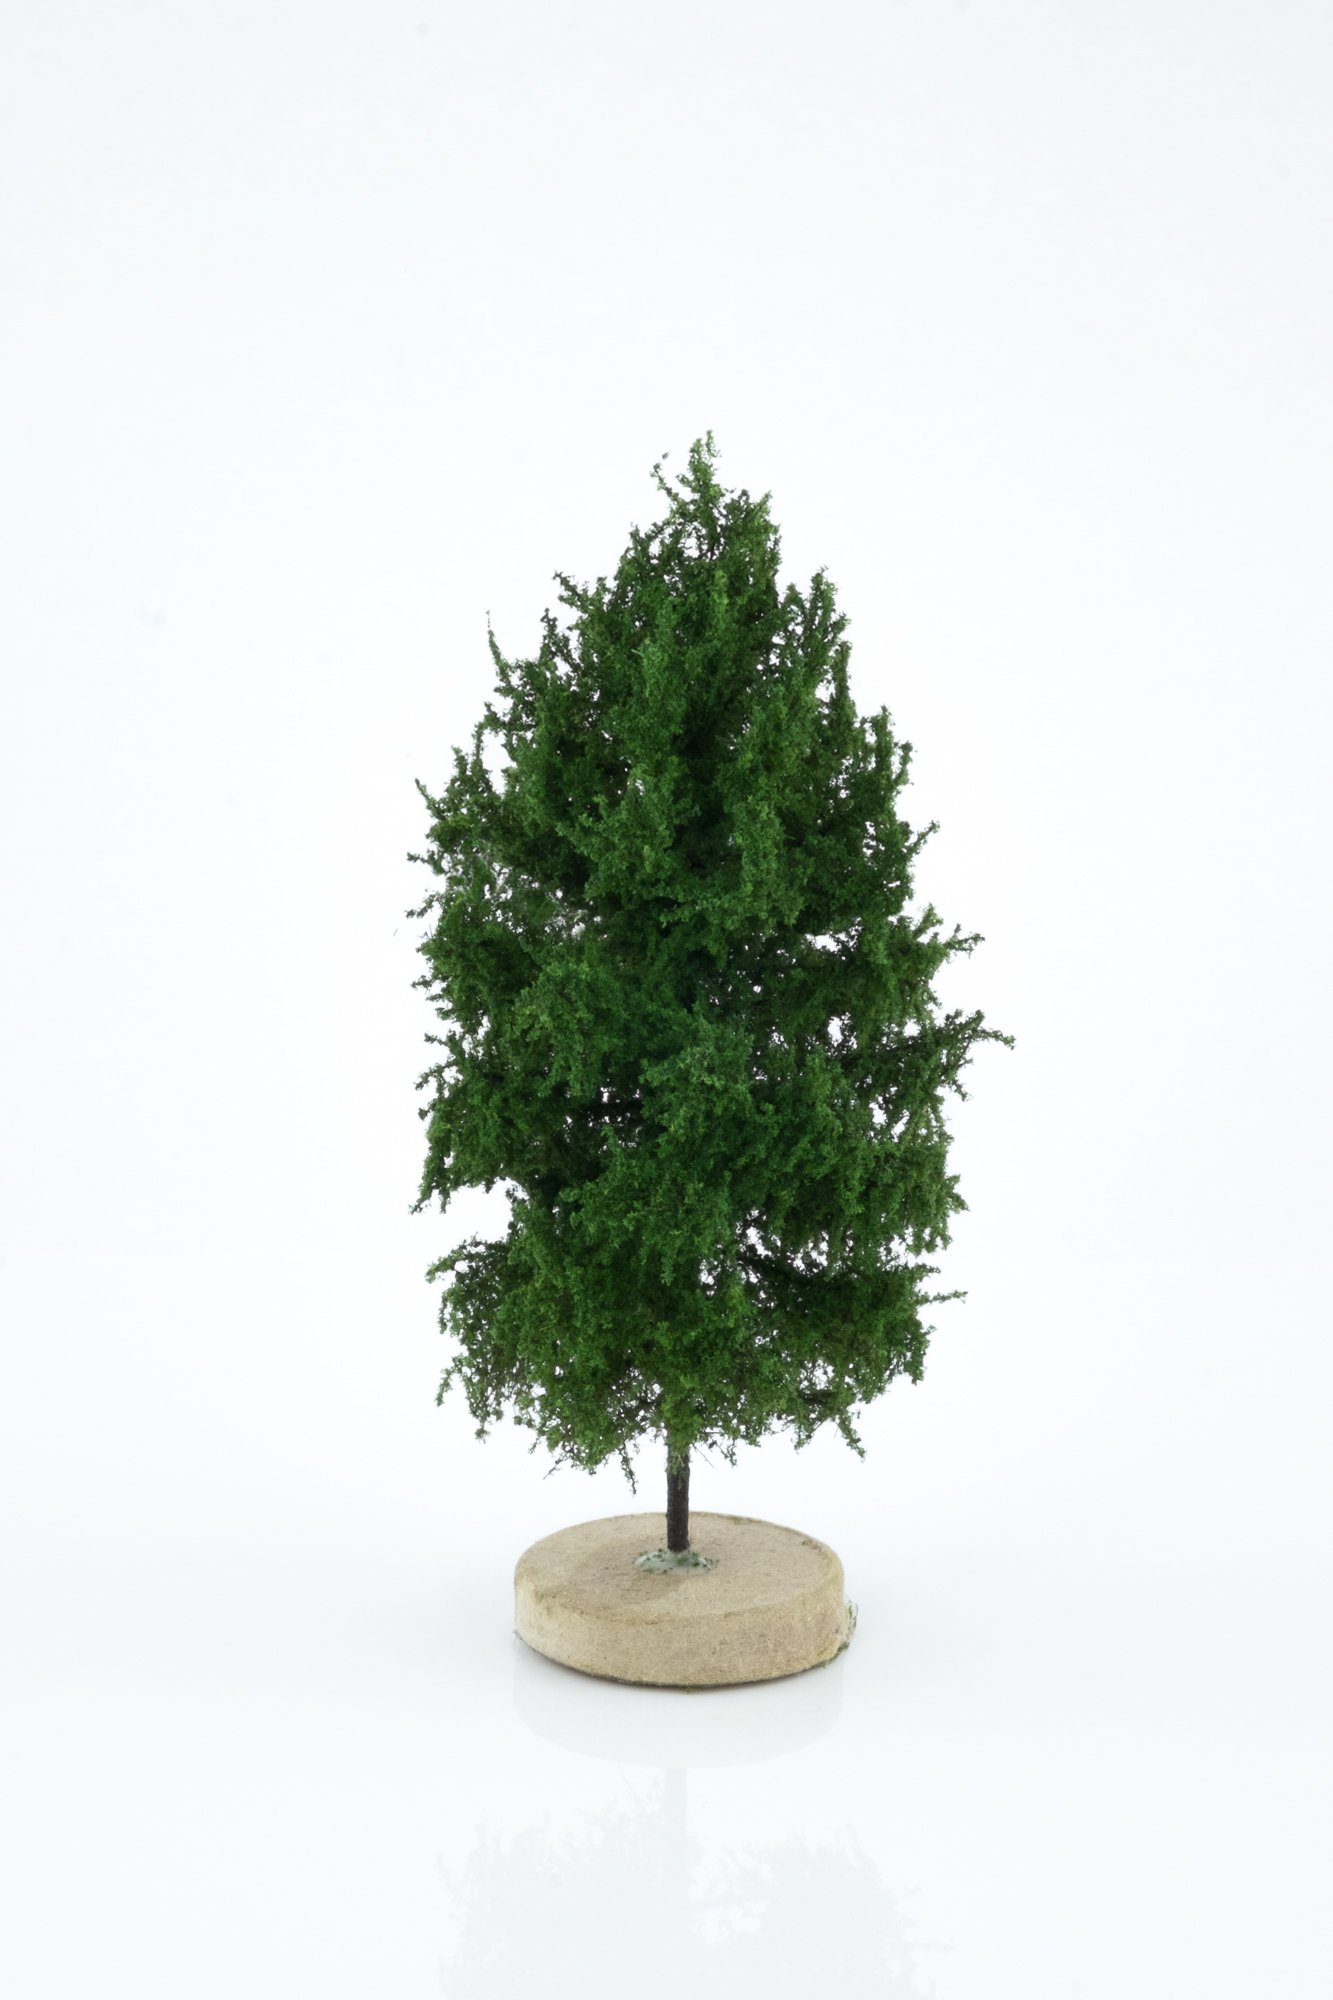 Hand-made, green, larch tree model. Size between 8 and 12 cm. Made from high quality model supplies by Primo Models.